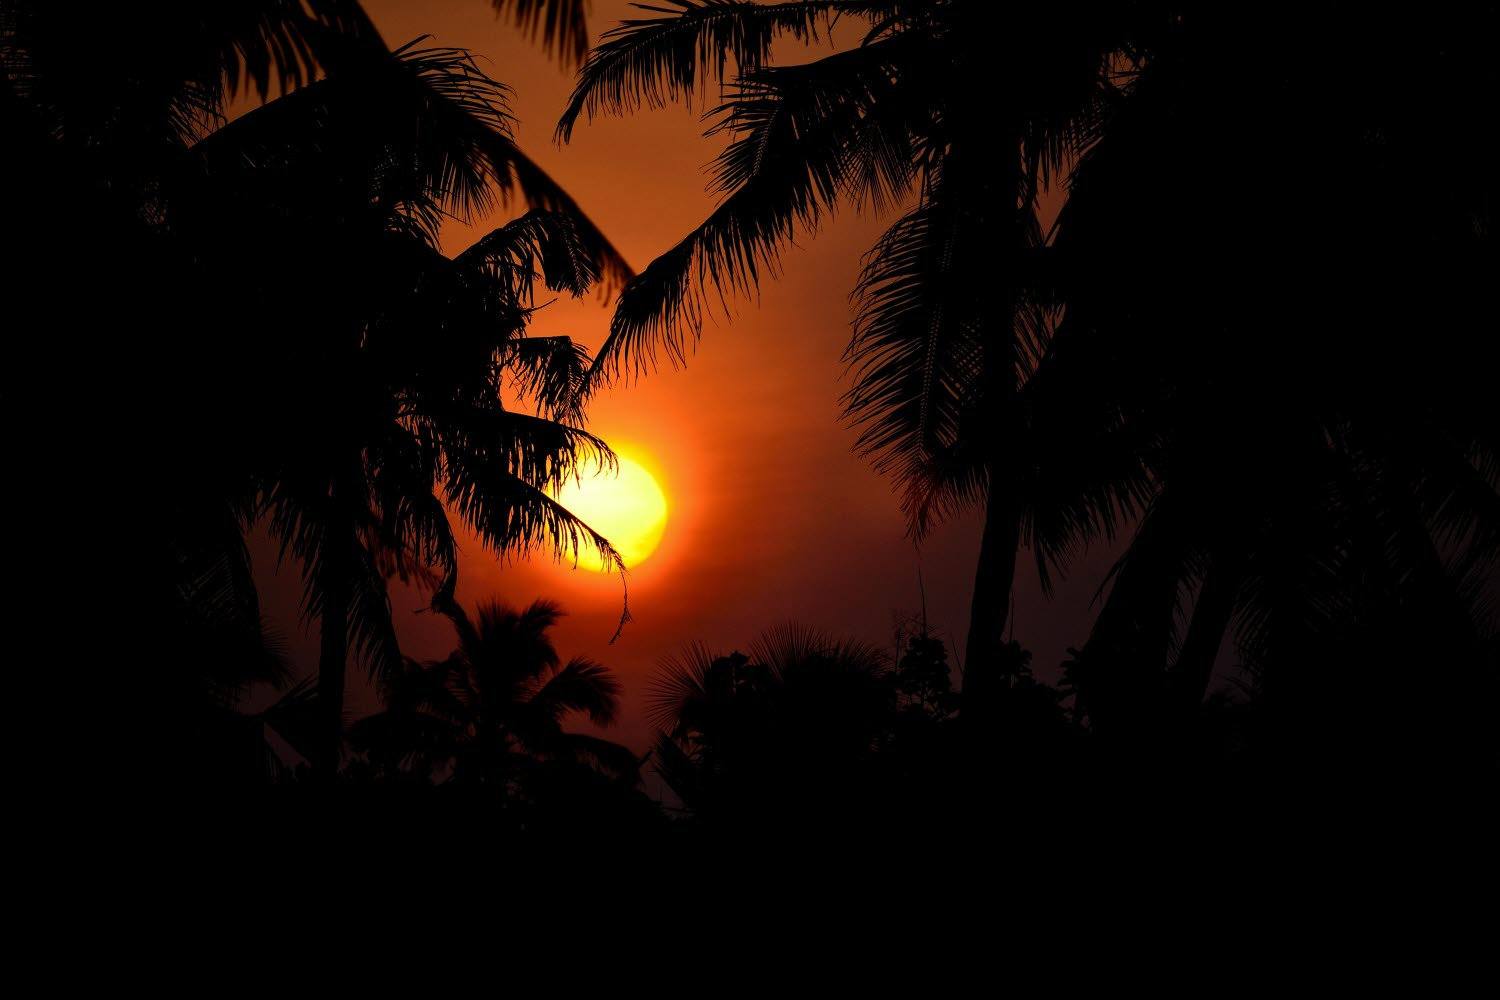 Sunrise